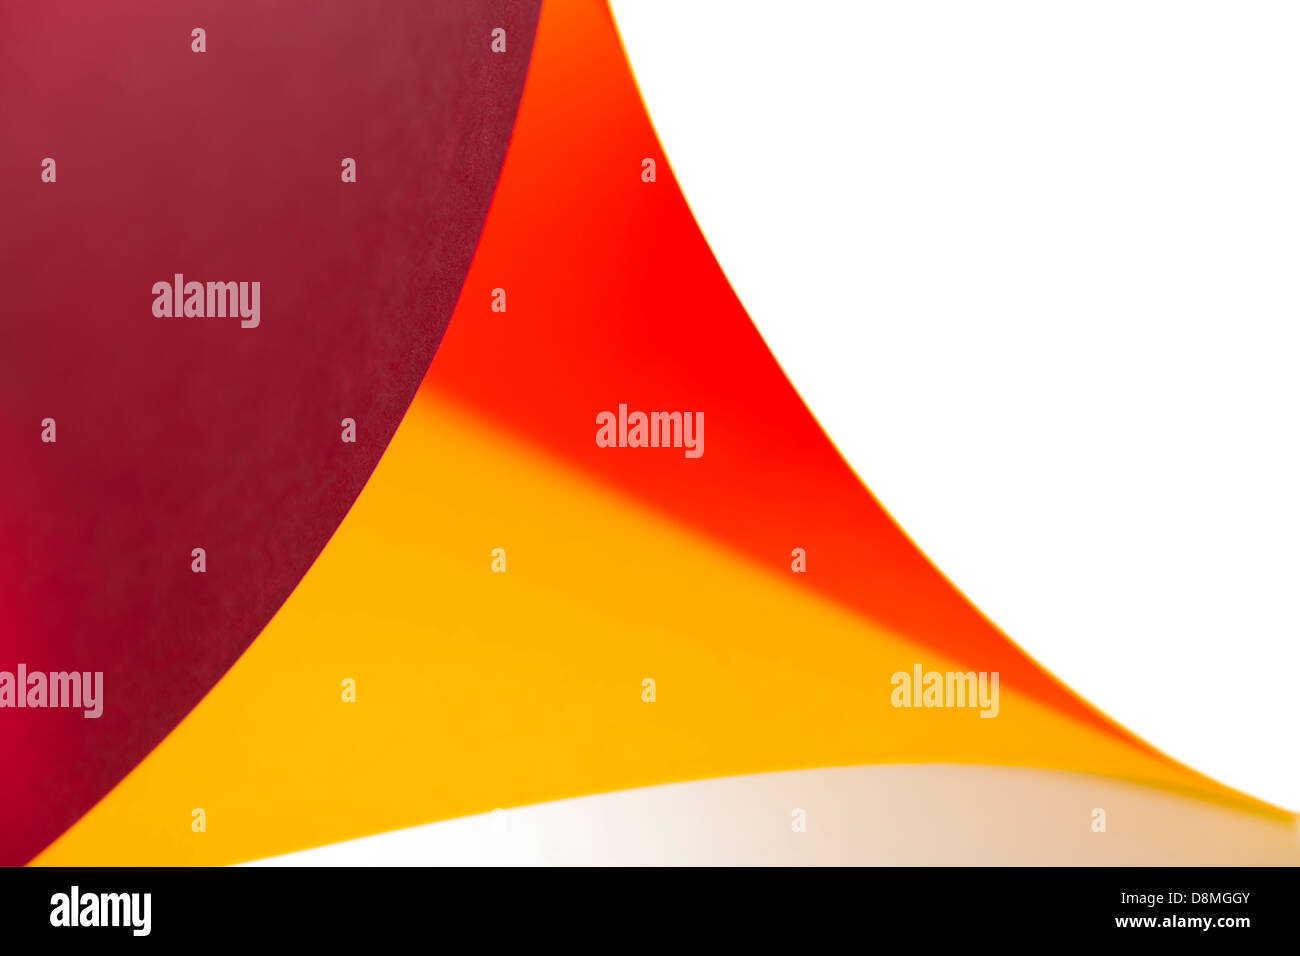 abstract colors red, orange, white for background triangle form - Stock Image